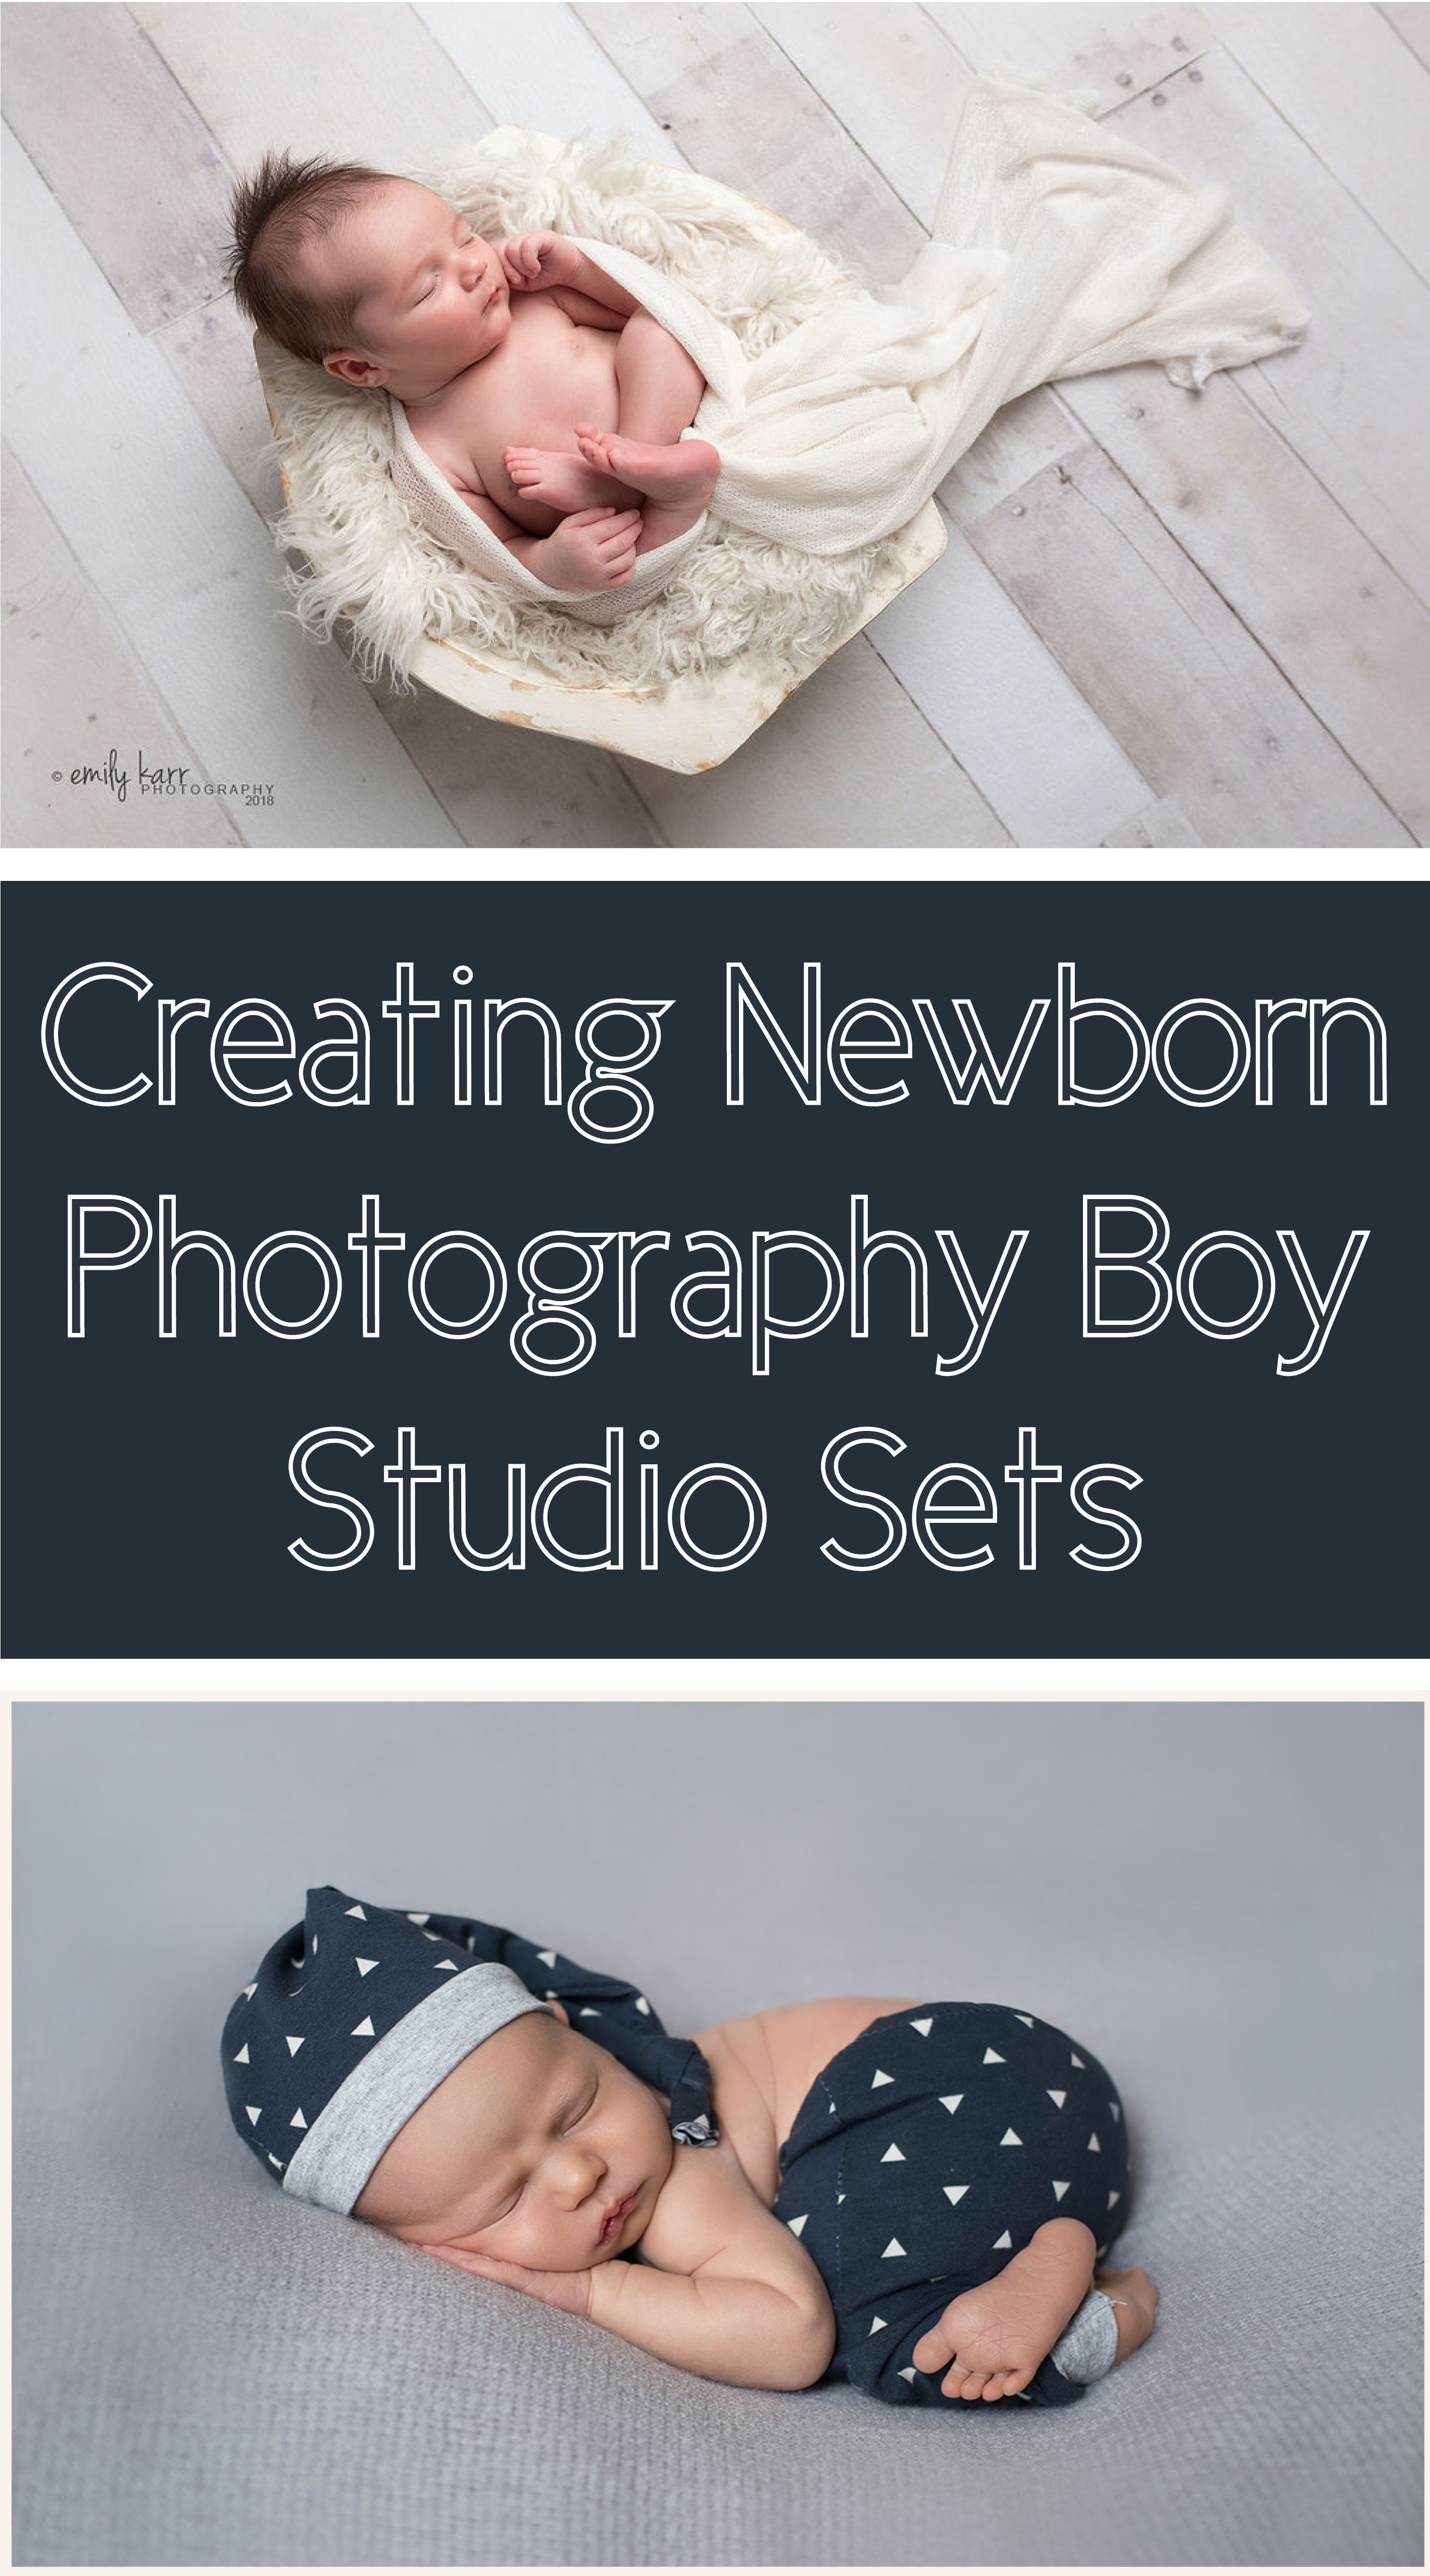 There are three great ways to create a memorable newborn photography boy setup that any family